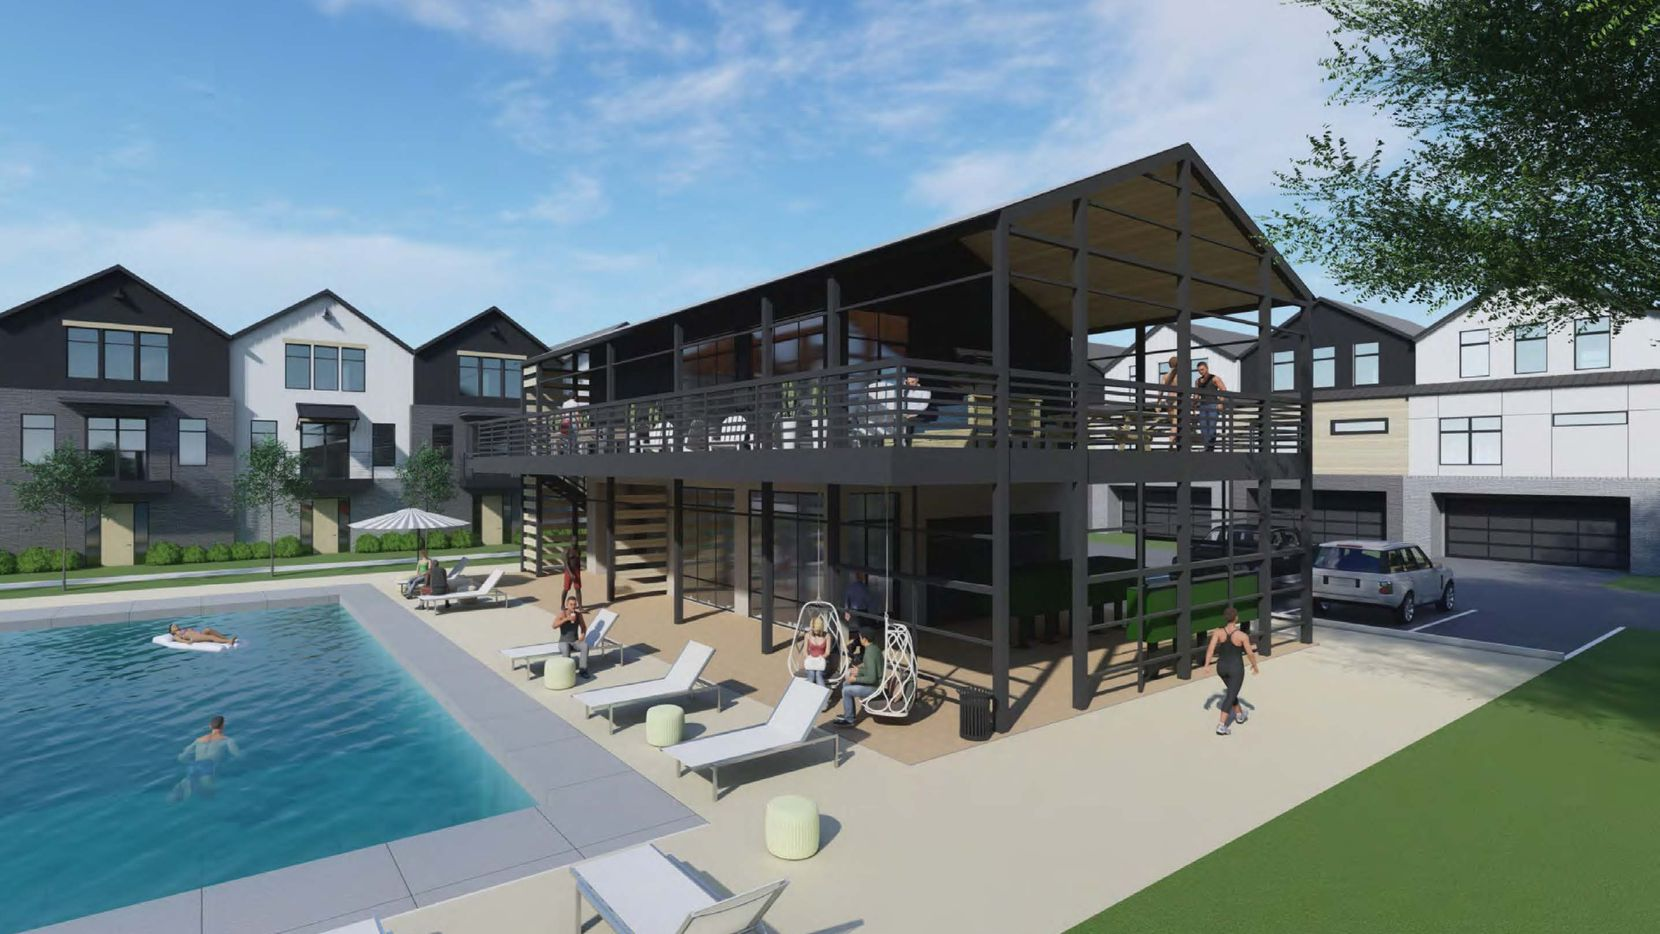 The Fort Worth Avenue rental community will include a clubhouse and swimming pool.